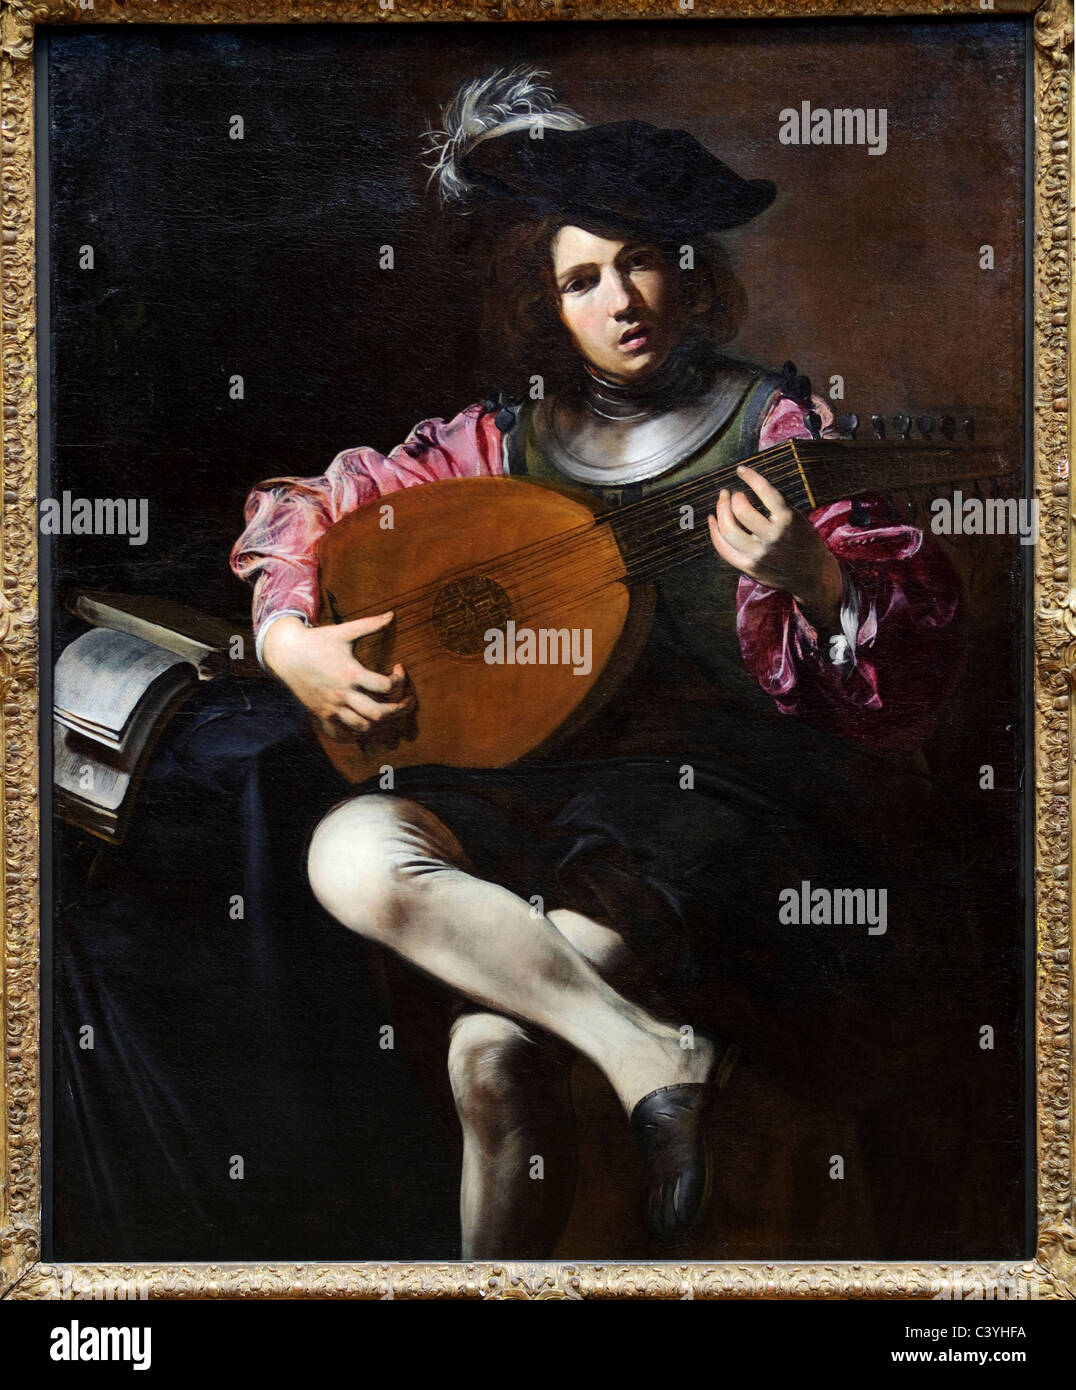 The Lute Player, ca. 1626, by Valentin de Boulogne, - Stock Image